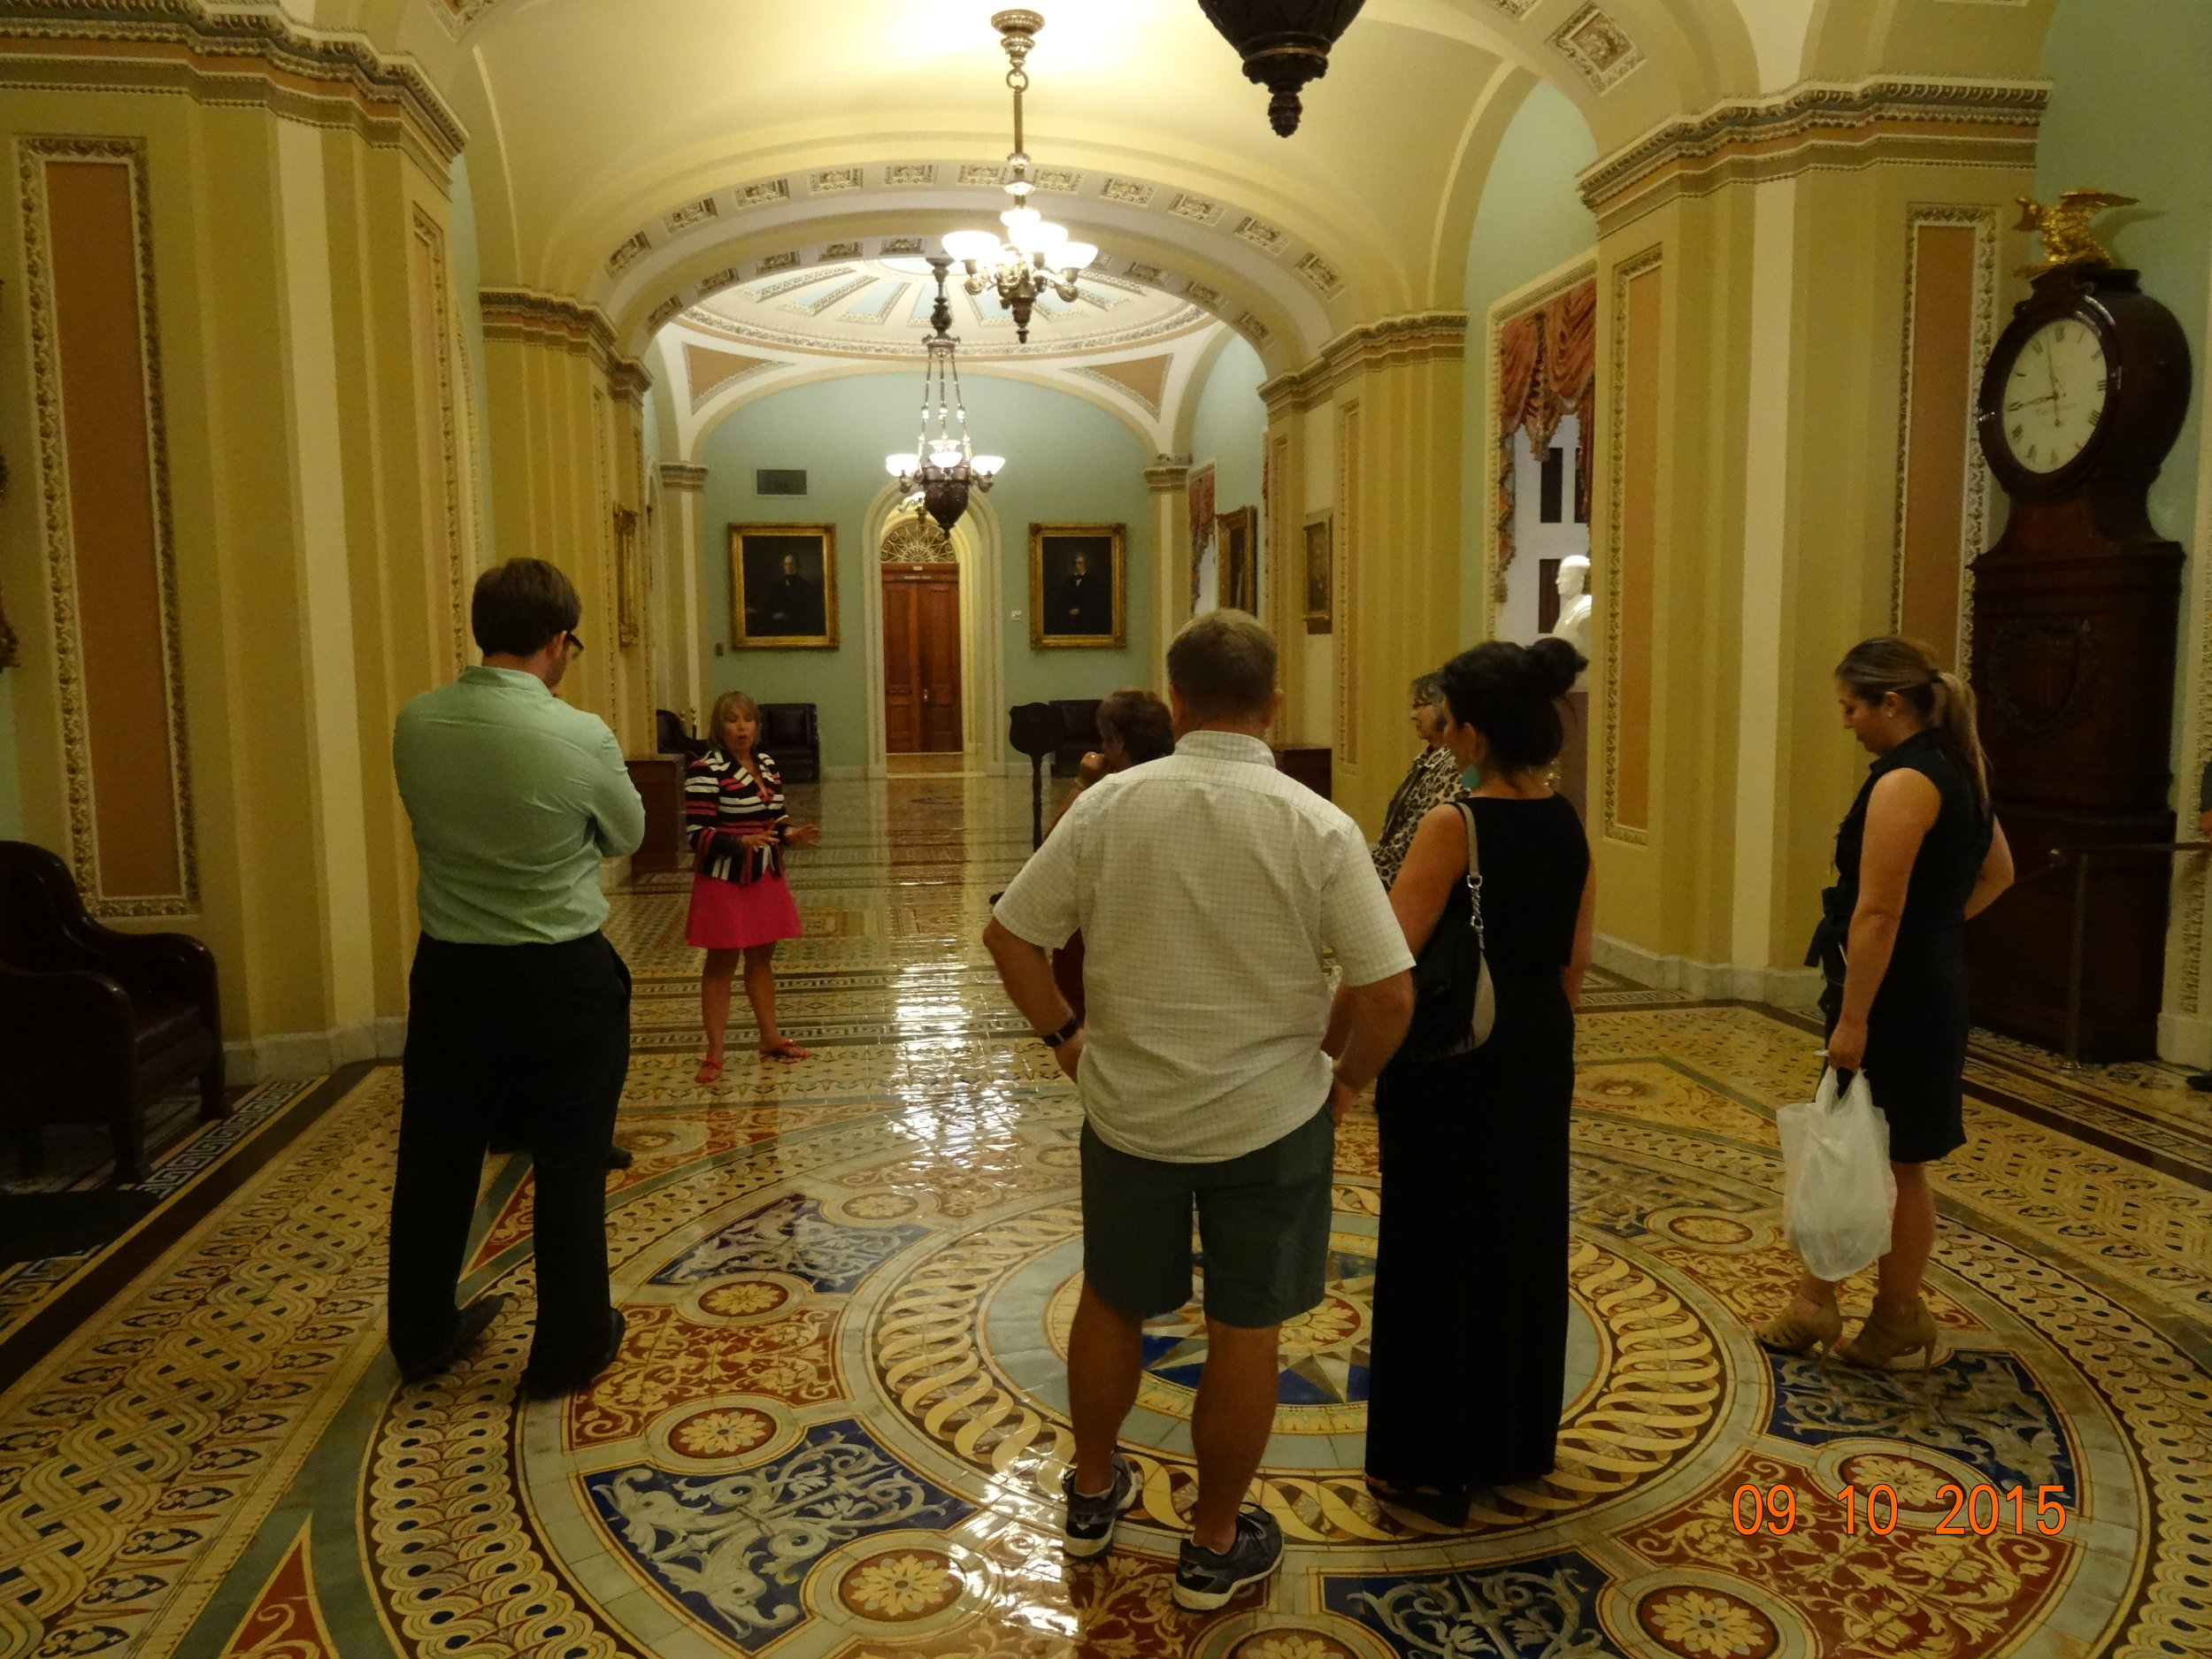 Hallway in the US Capital building